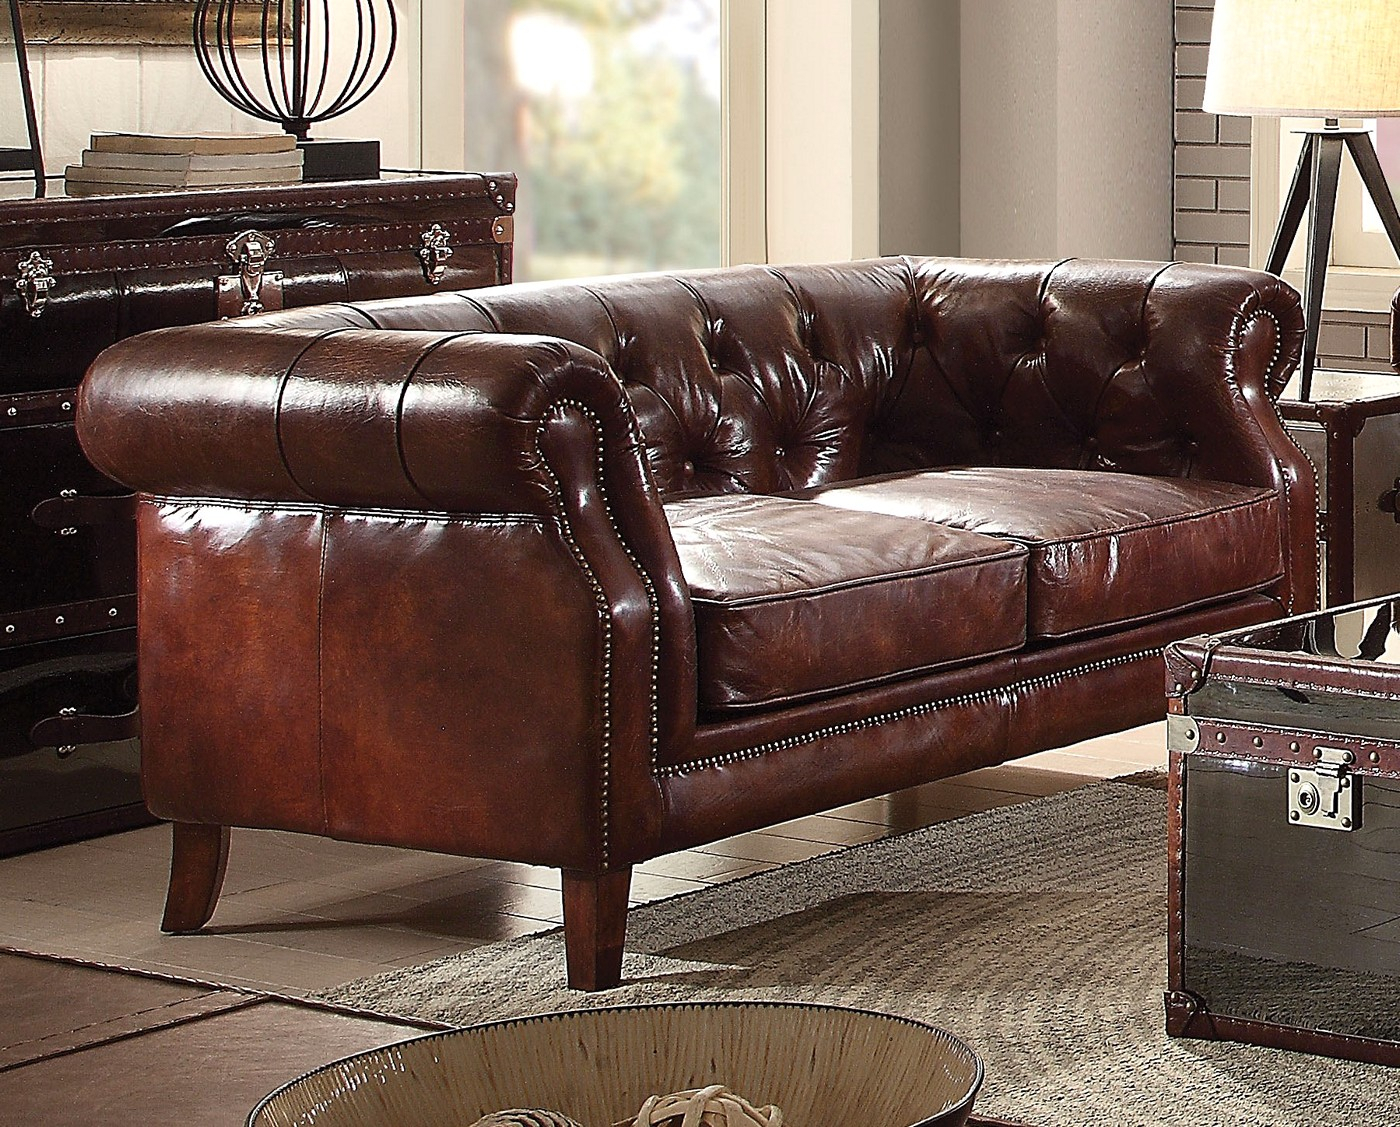 Vintage Chesterfield Sofa & Loveseat | Dark Brown Leather Regarding Chesterfield Sofas And Chairs (View 5 of 15)